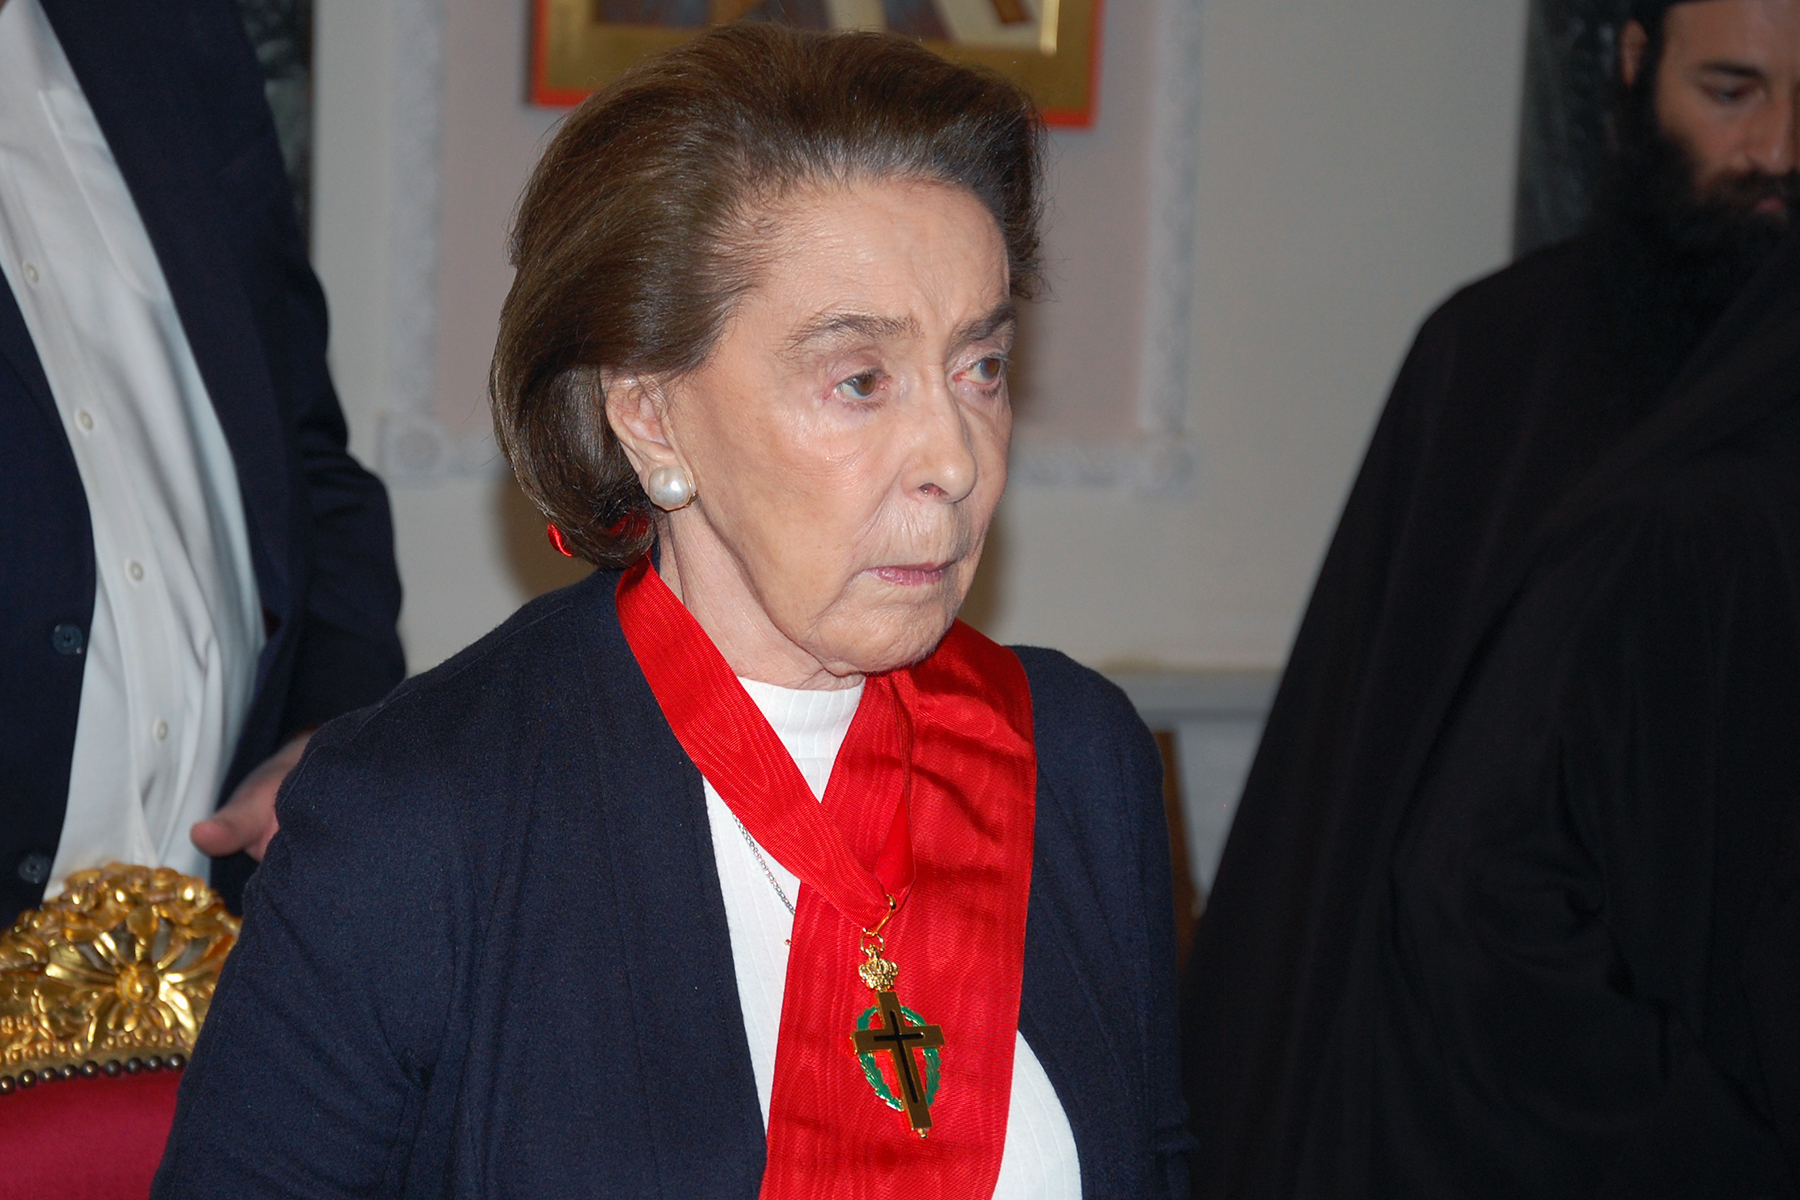 Mrs. Ertegun, decorated as Great Cross-Bearer of the Order of Orthodox Cross-Bearers of the Holy Sepulchre.